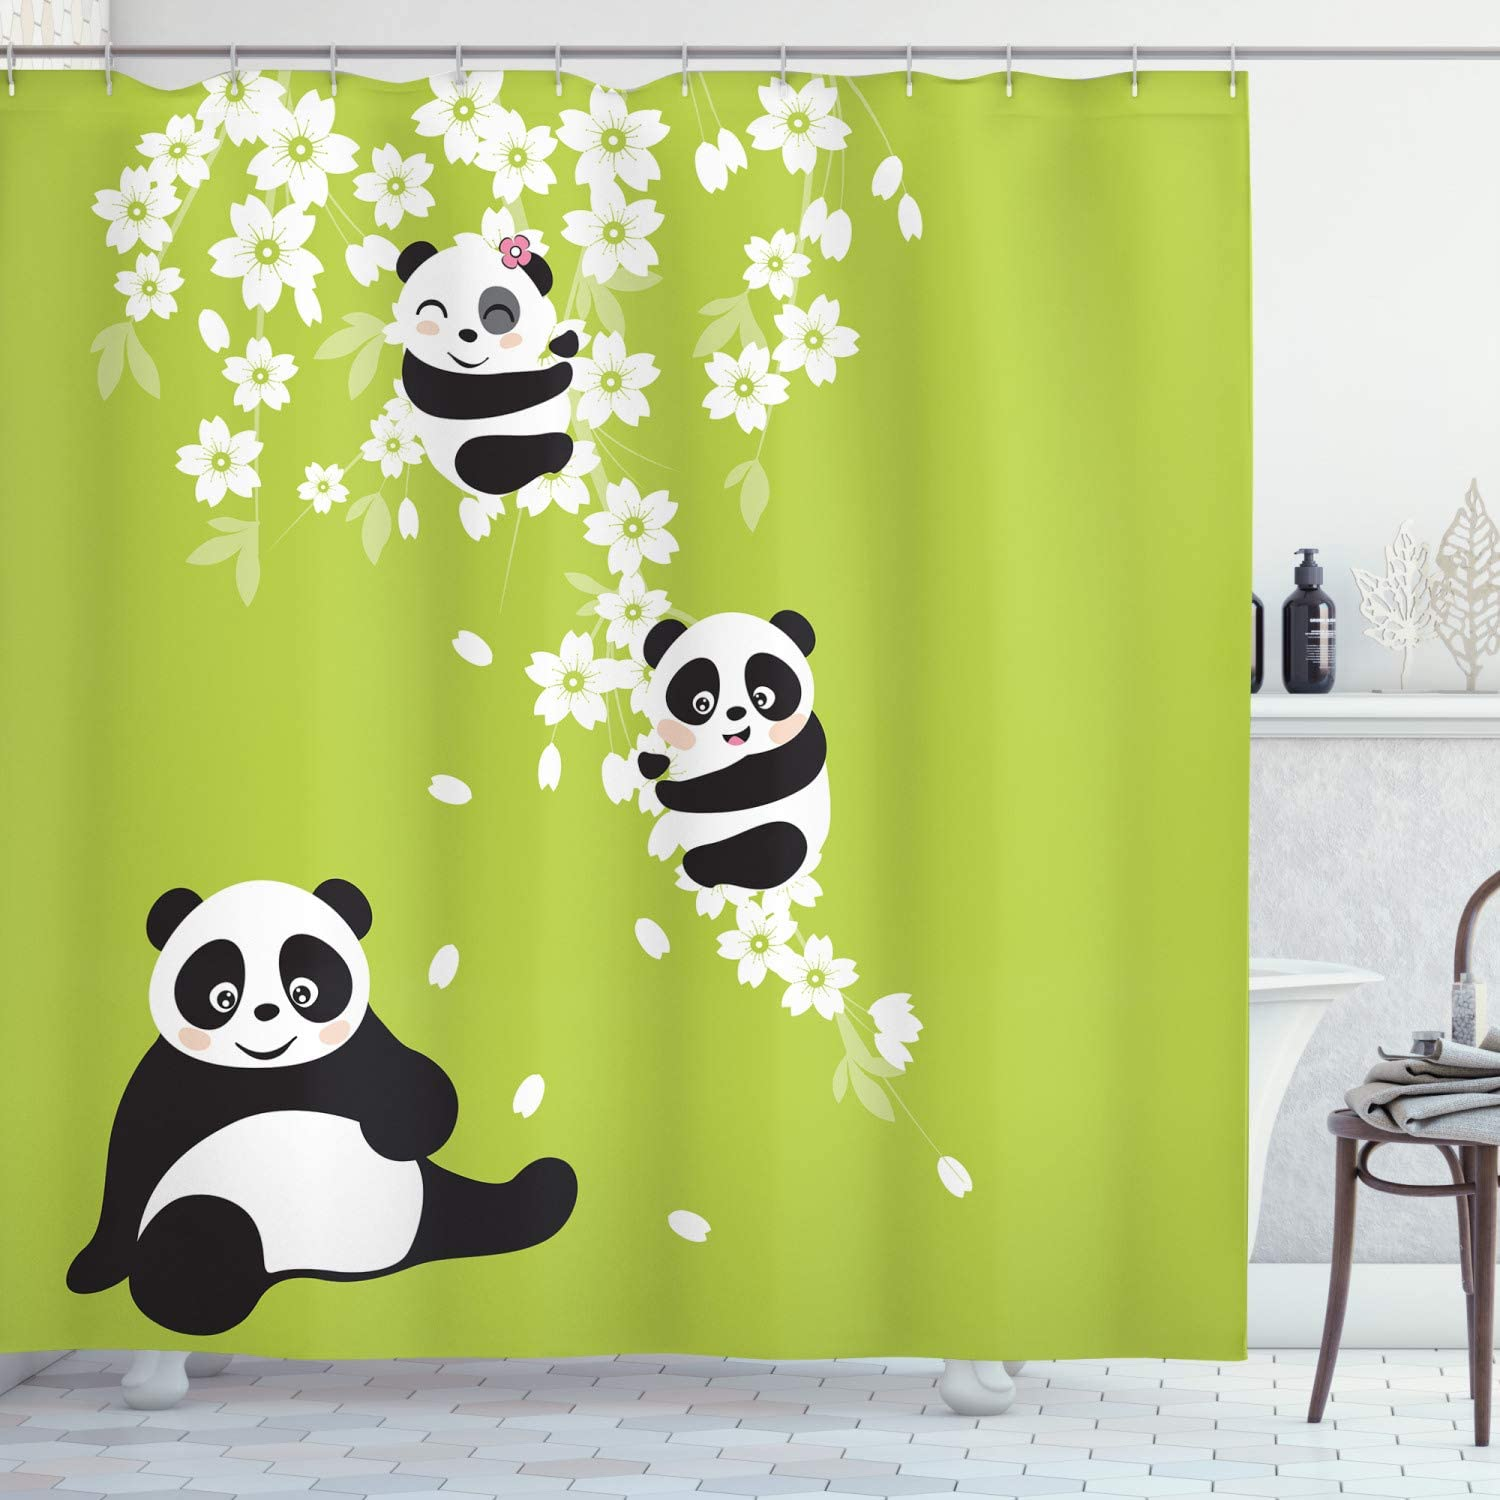 Ambesonne Panda Shower Curtain, Baby Panda Bears in Cherry Bloom Tree Branches with Mom Under The Tree Cartoon, Cloth Fabric Bathroom Decor Set with Hooks, 70